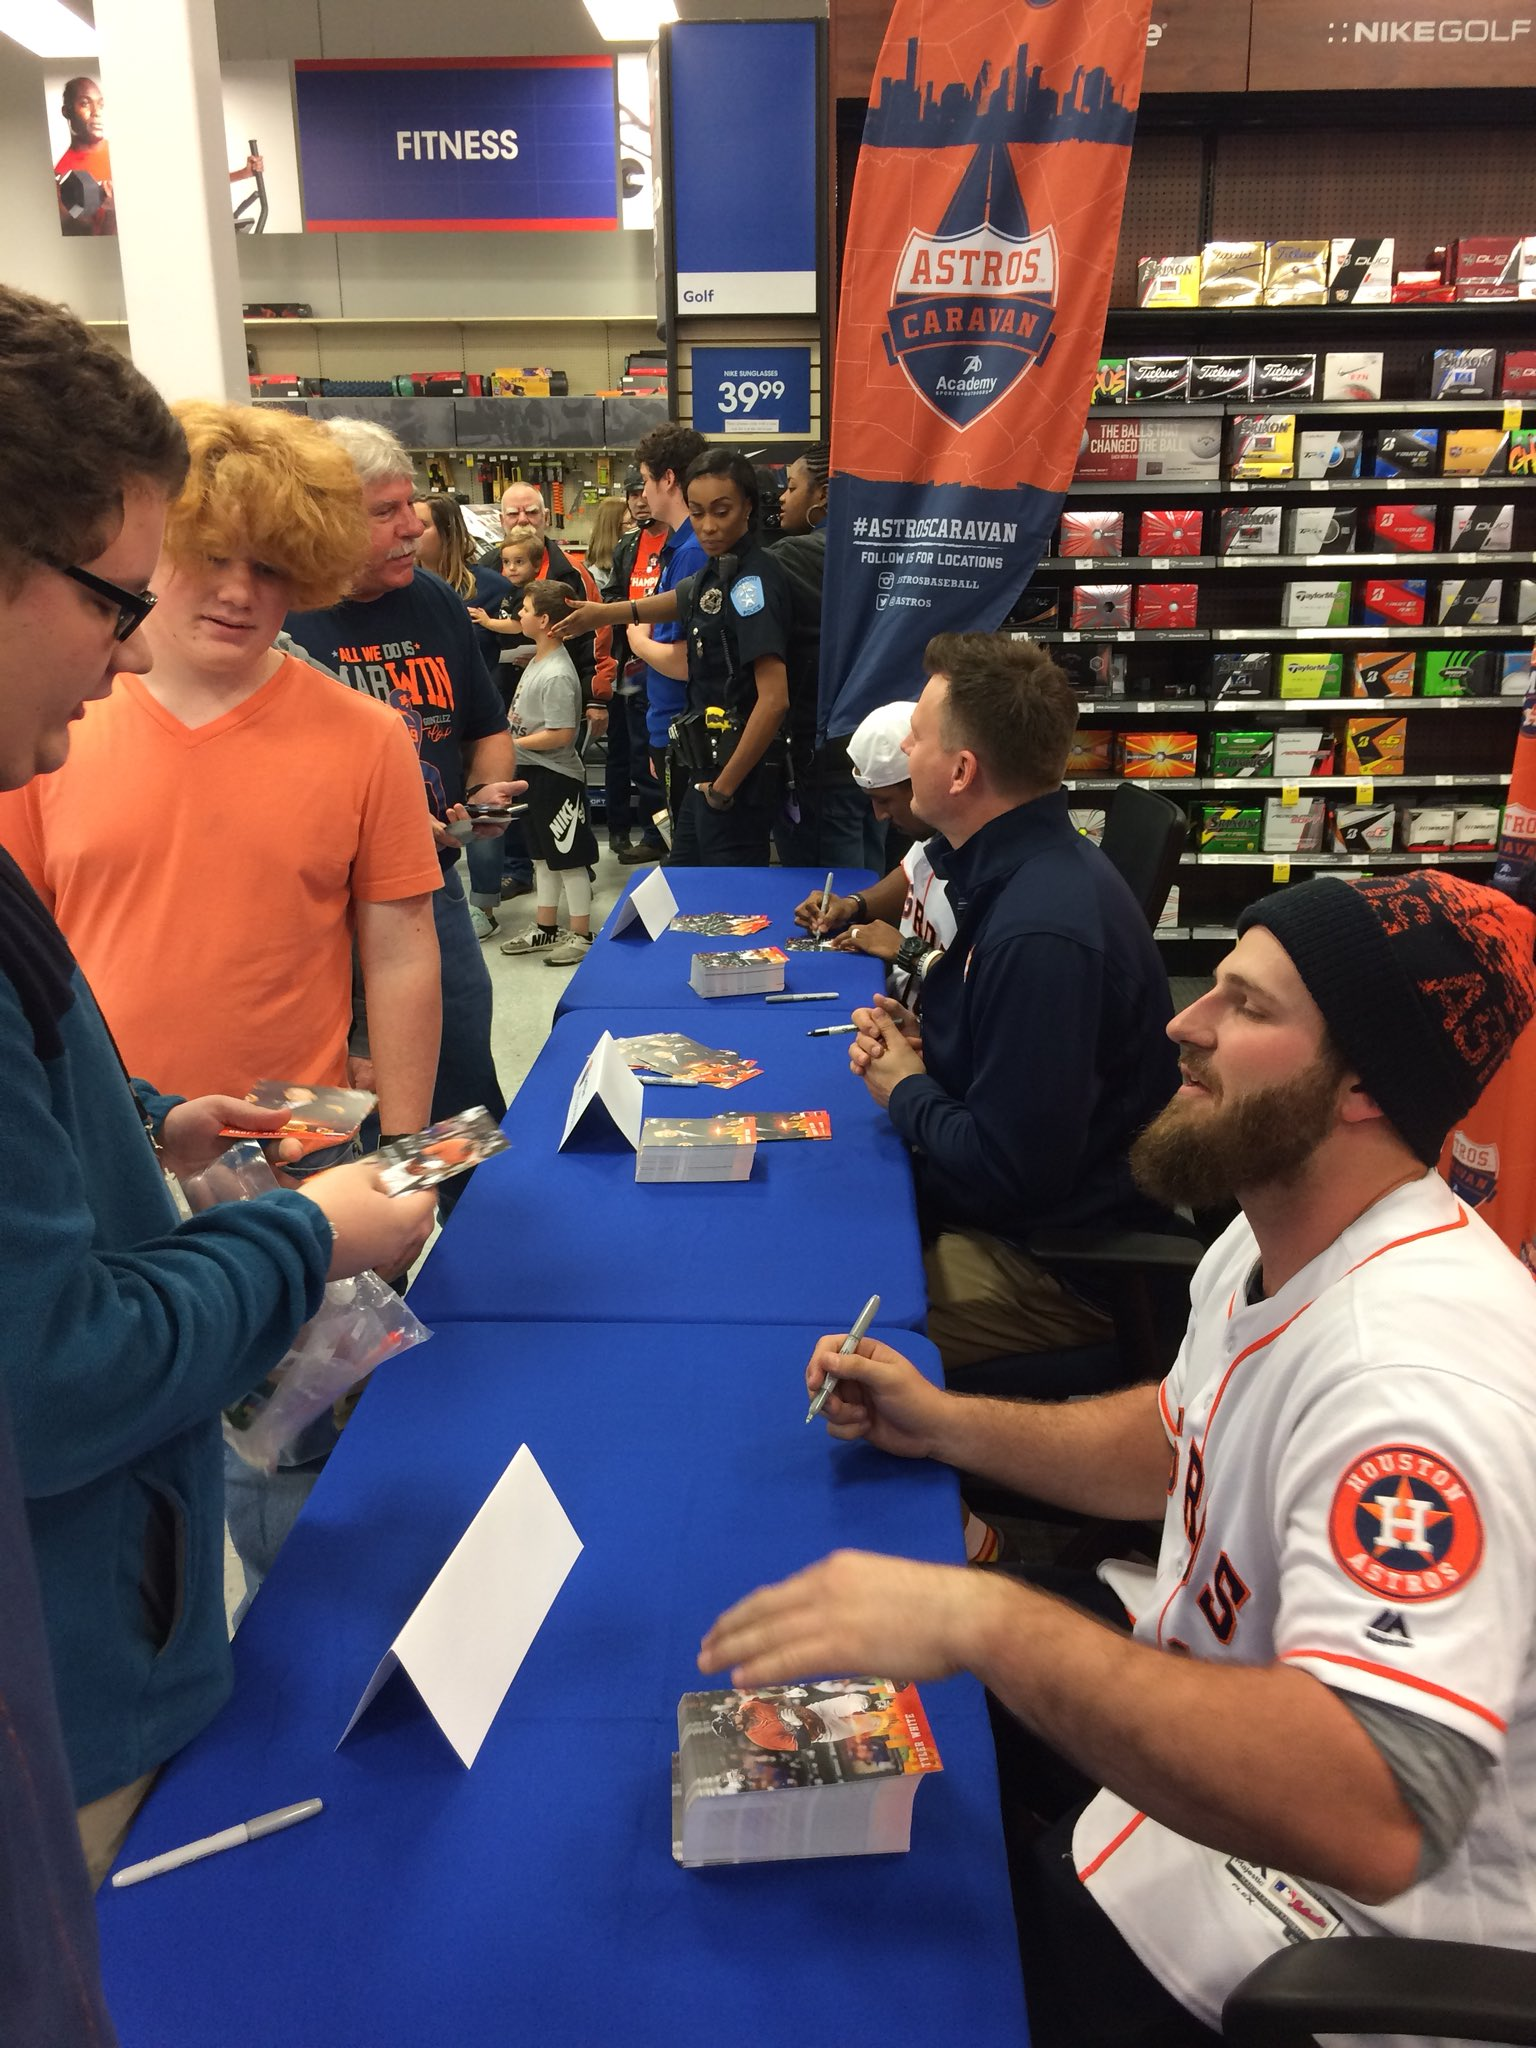 Autograph time at @Academy! ✍️  #AstrosCaravan�� https://t.co/UJrOSZ0ju0